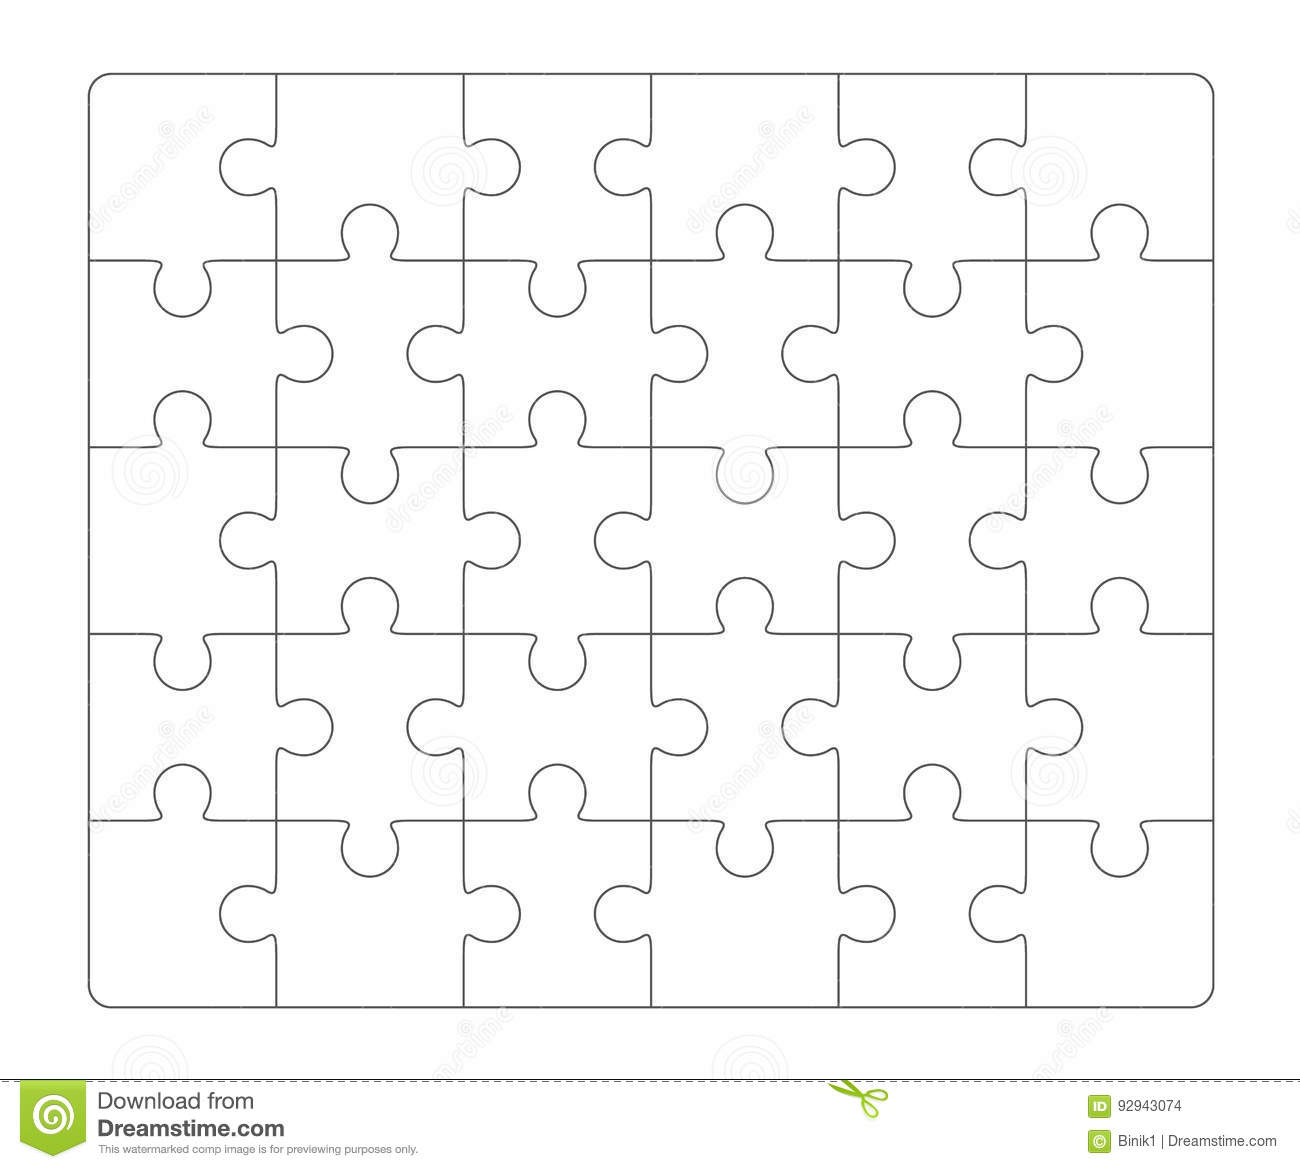 Jigsaw Puzzle Blank 6x5 Elements, Thirty Vector Pieces. Stock Vector ...